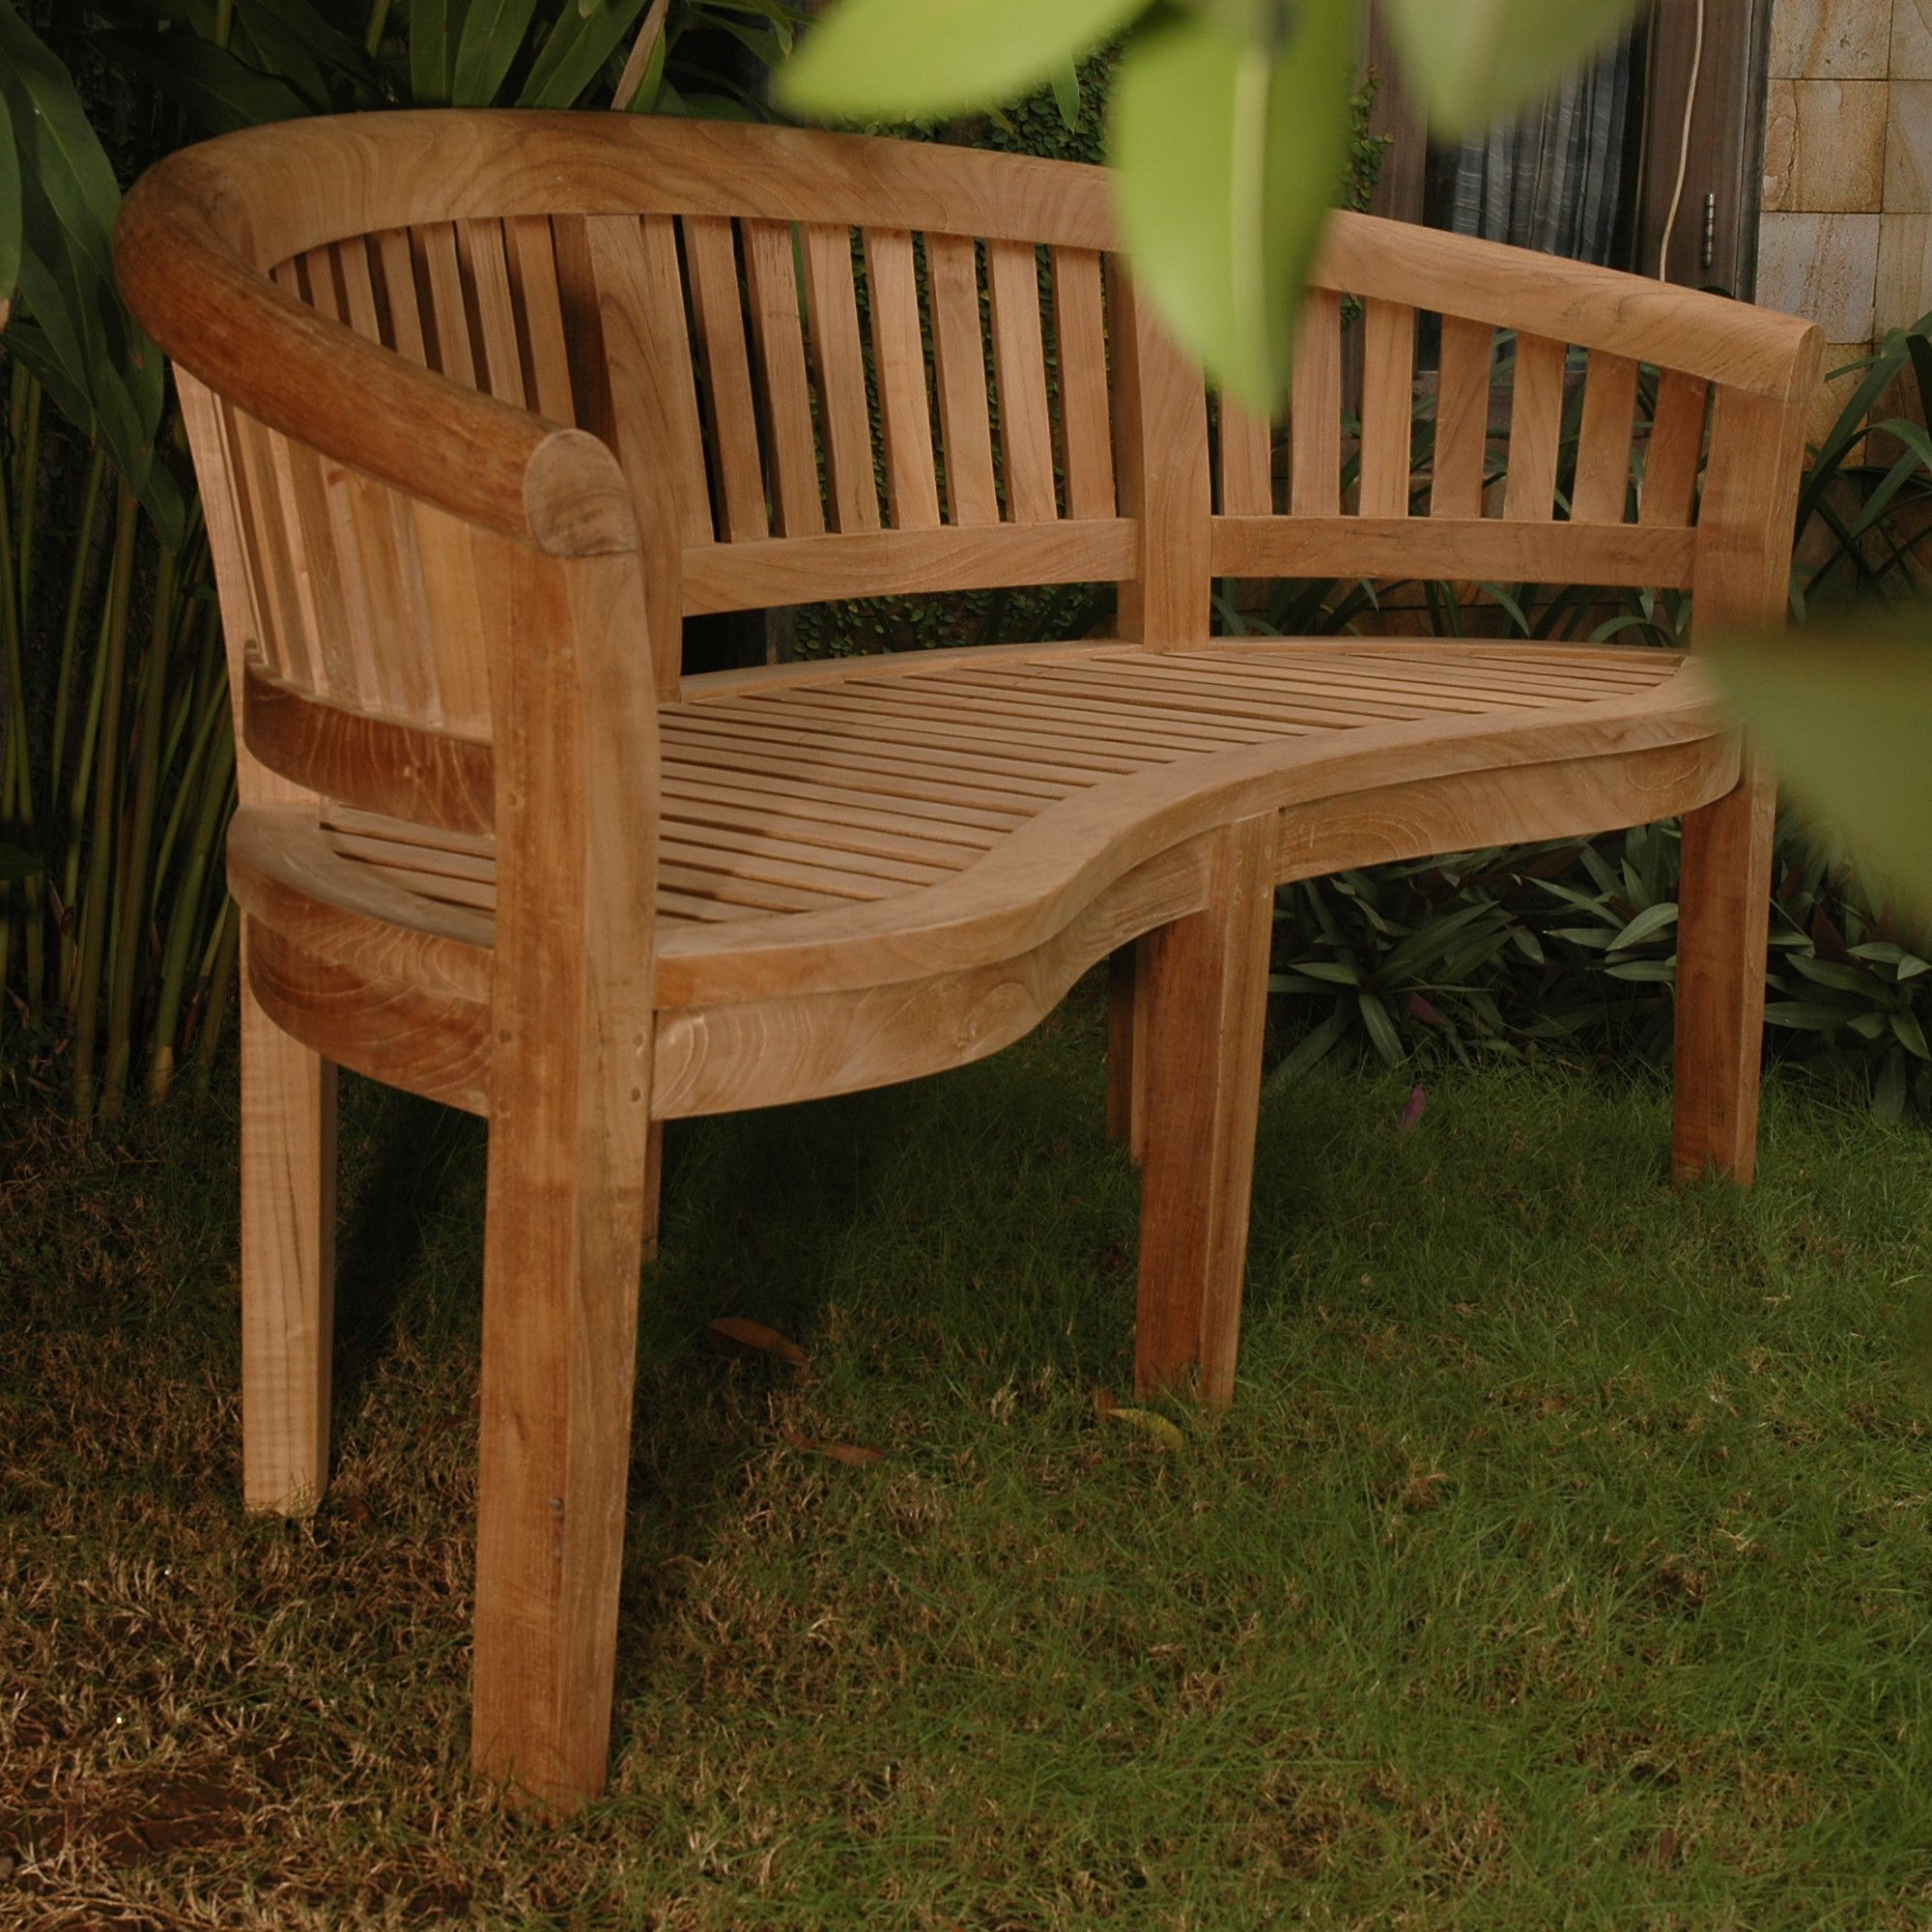 Curve Teak Garden Bench | Products | Pinterest | Products